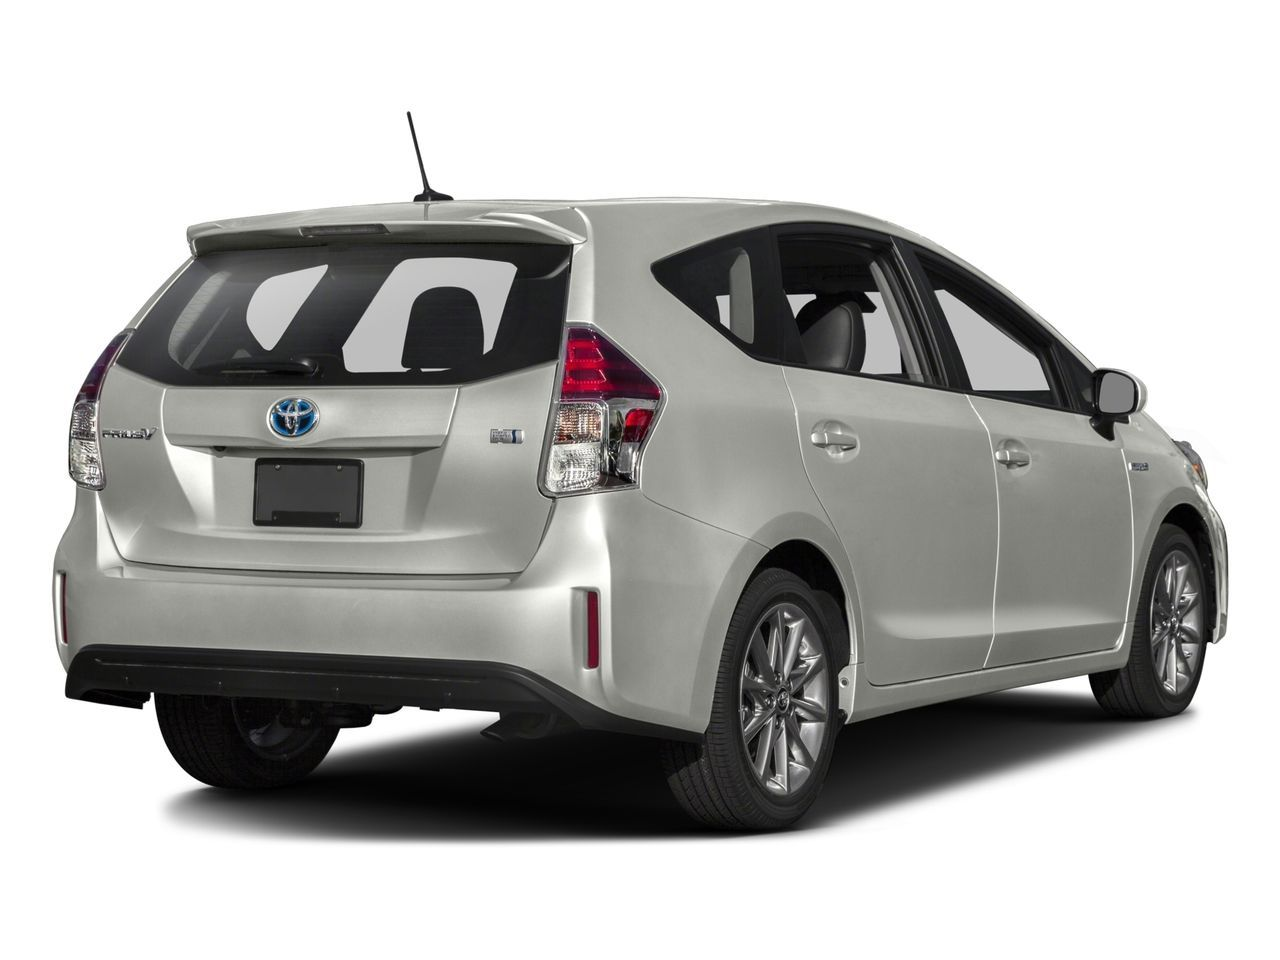 2017 Toyota Prius V Reviews, Ratings, Prices Consumer